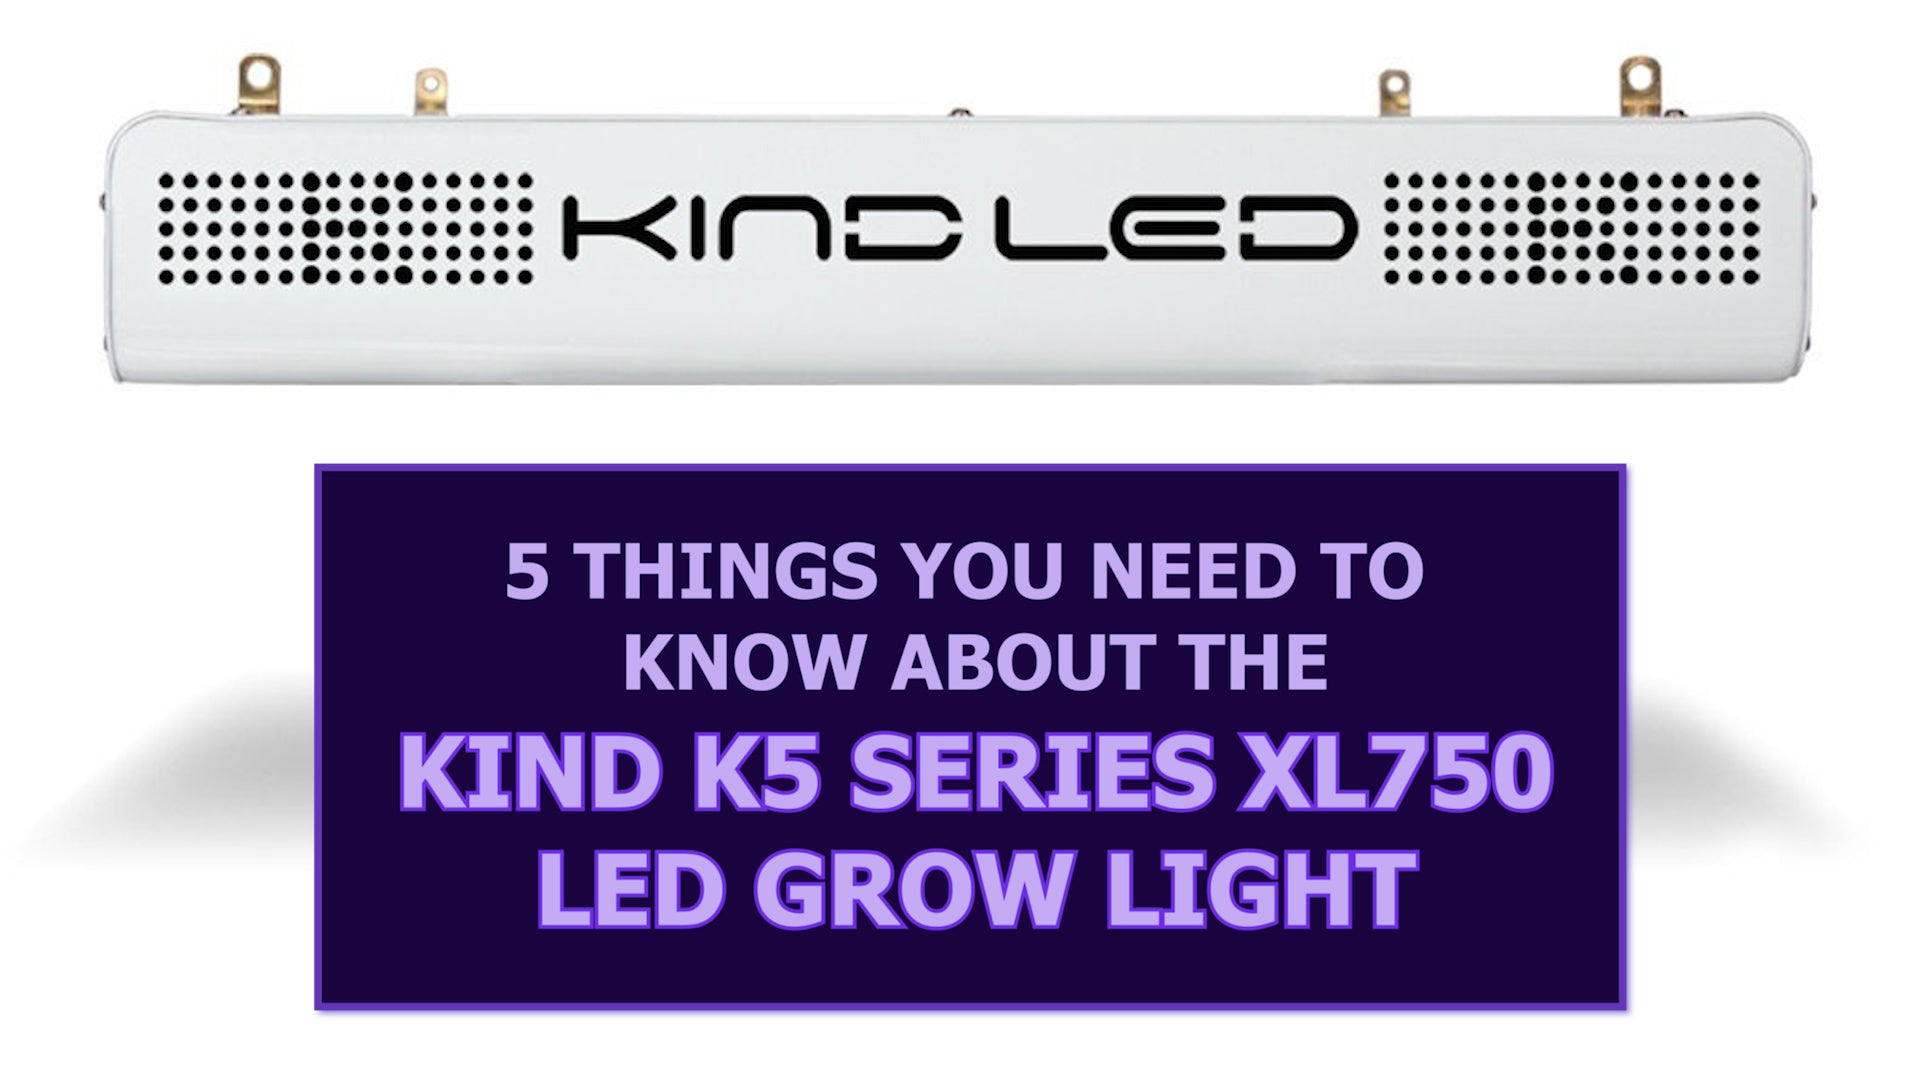 5 Things You Need to Know about the Kind K5 series XL750 LED Grow Light